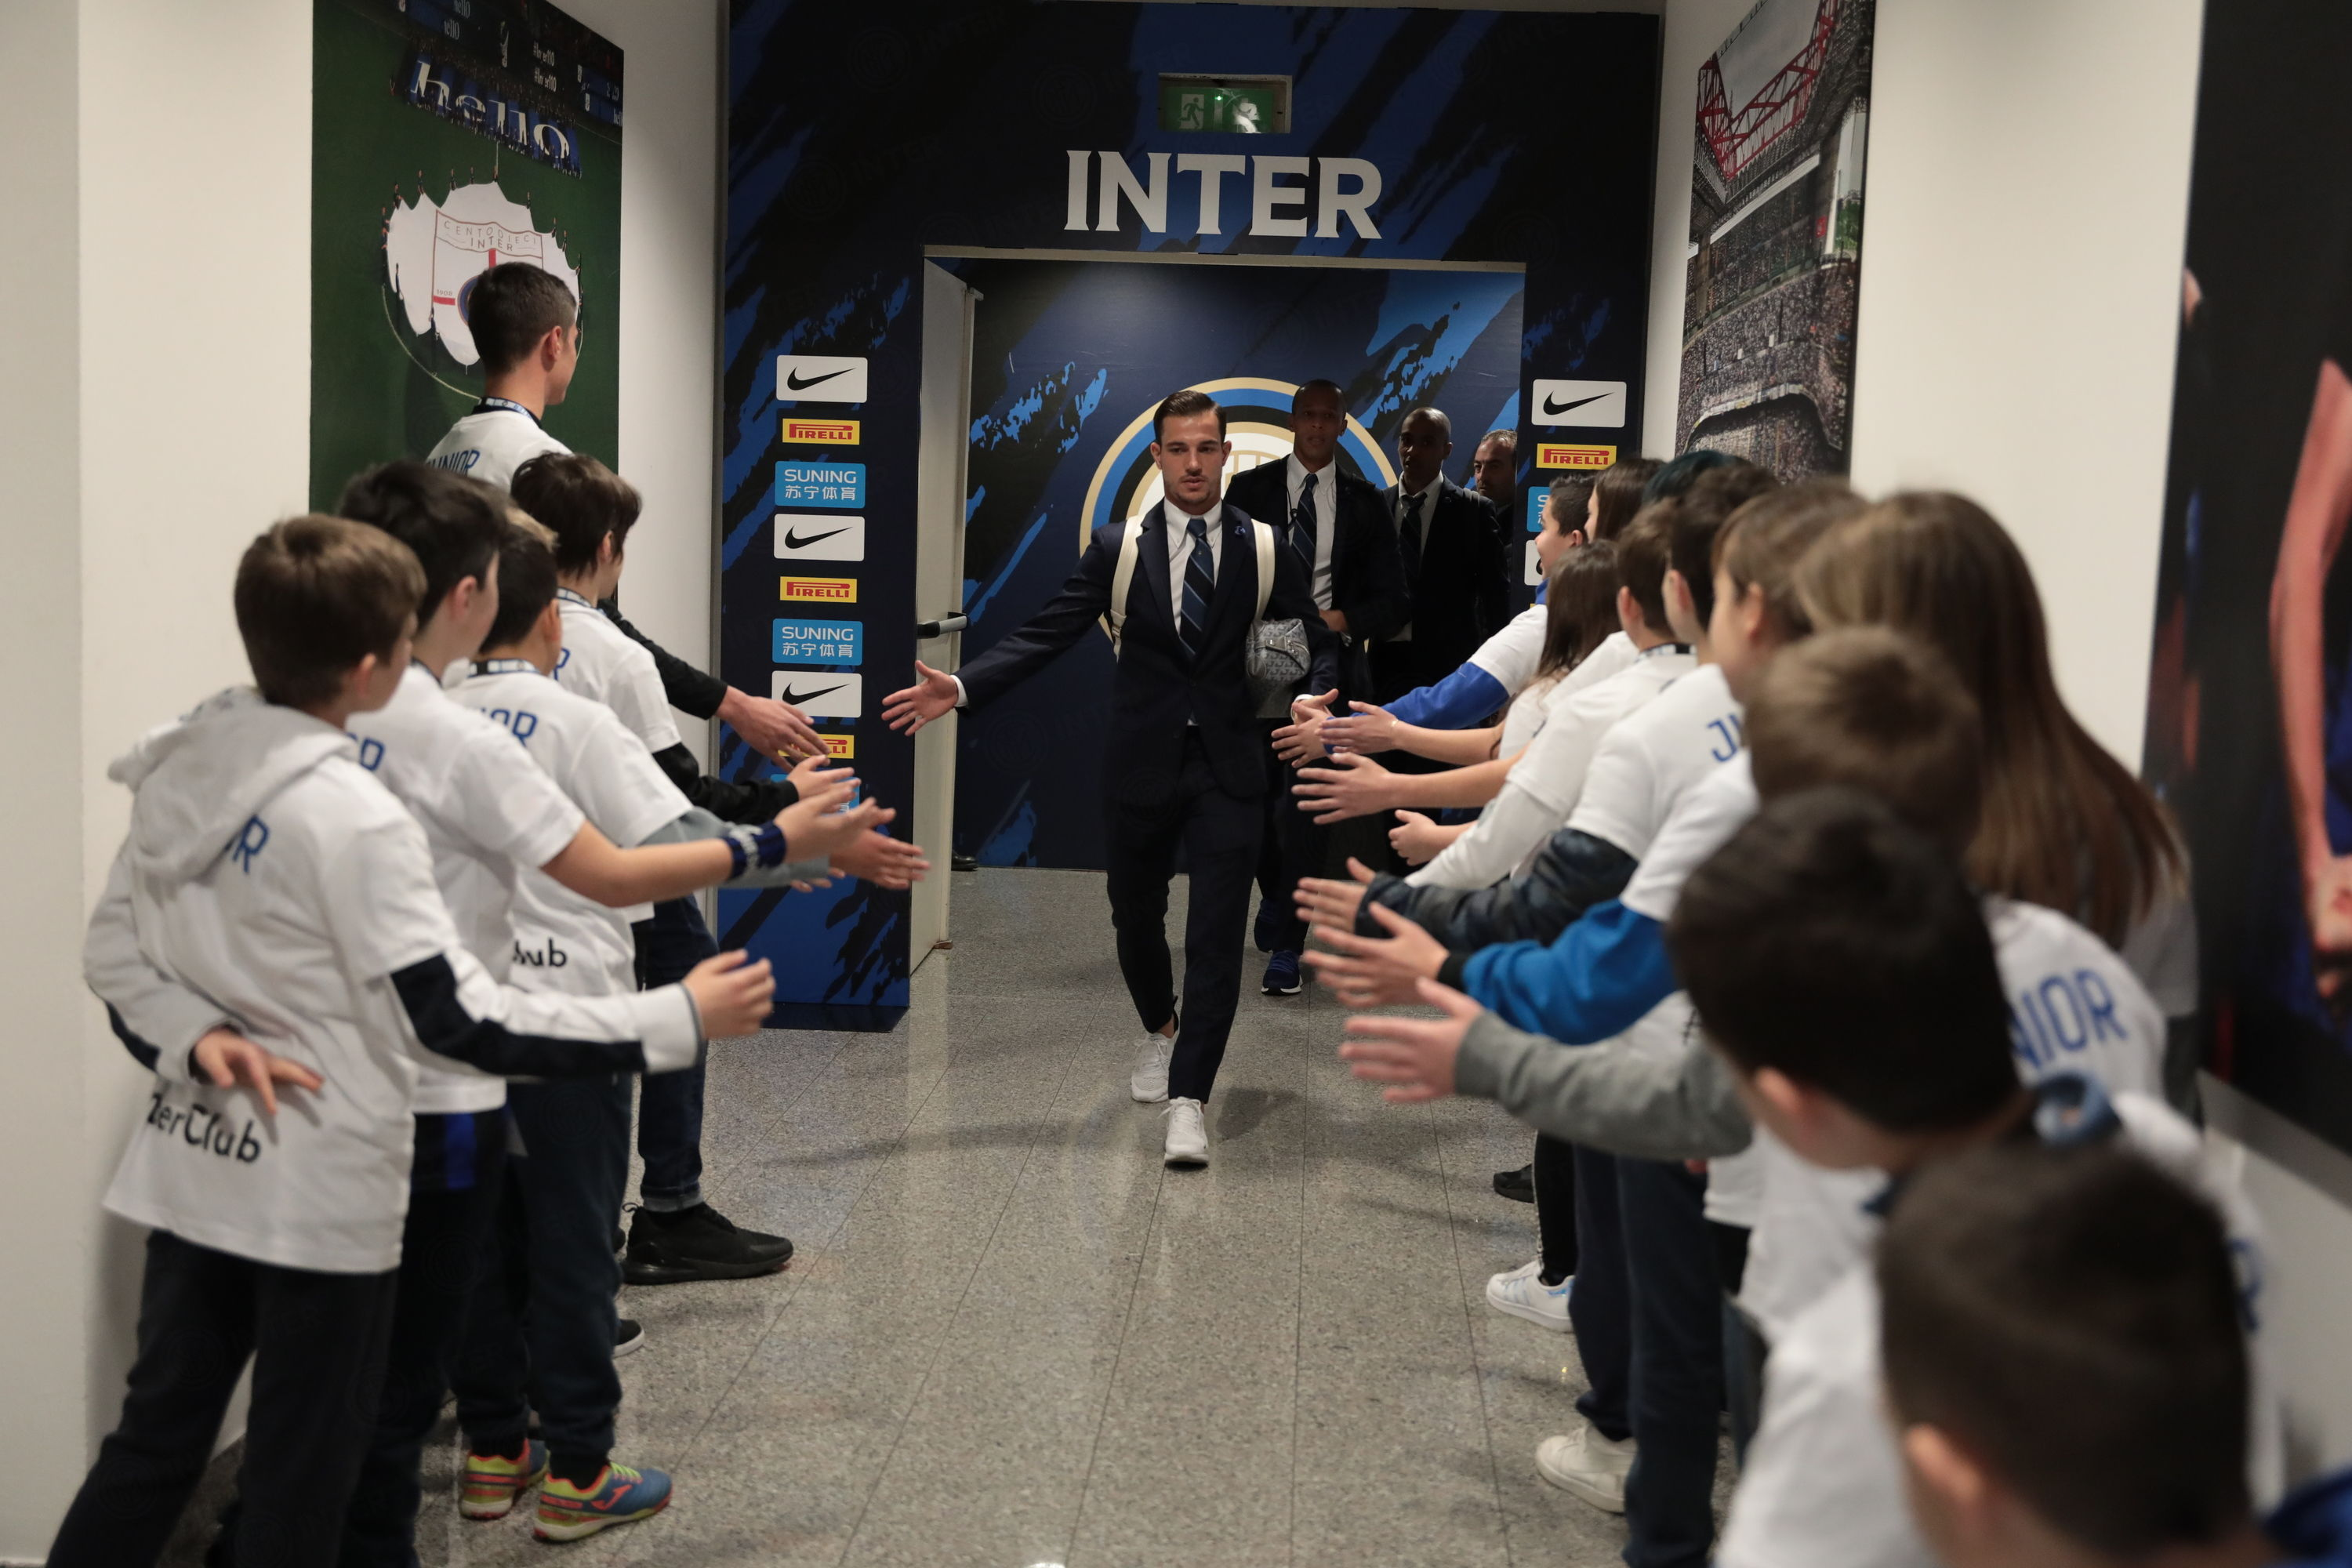 A special match for Inter Club: the numbers and activities